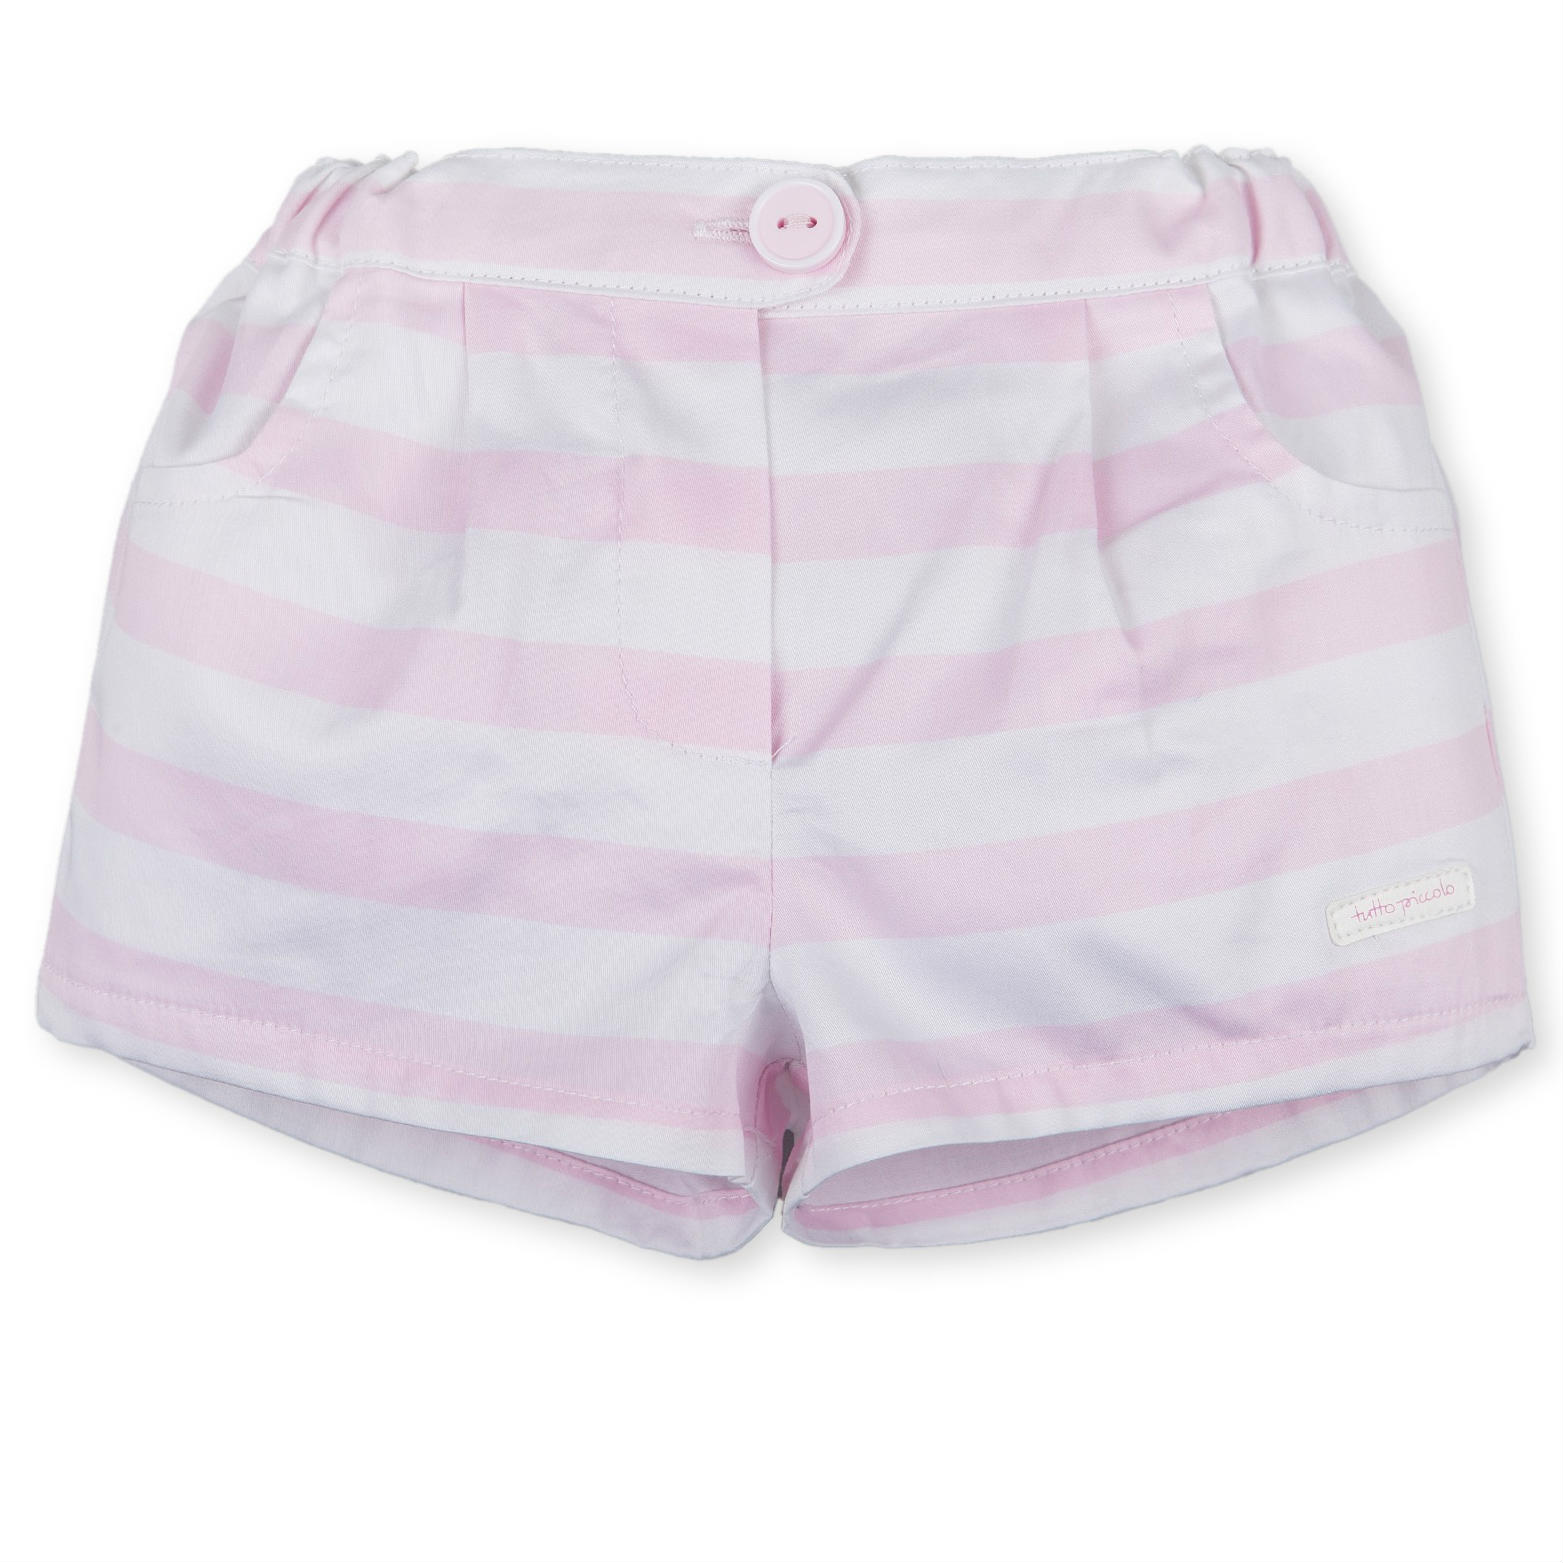 0b41513ab3d0 Baby Girls Pink Stripe Shorts (2726)